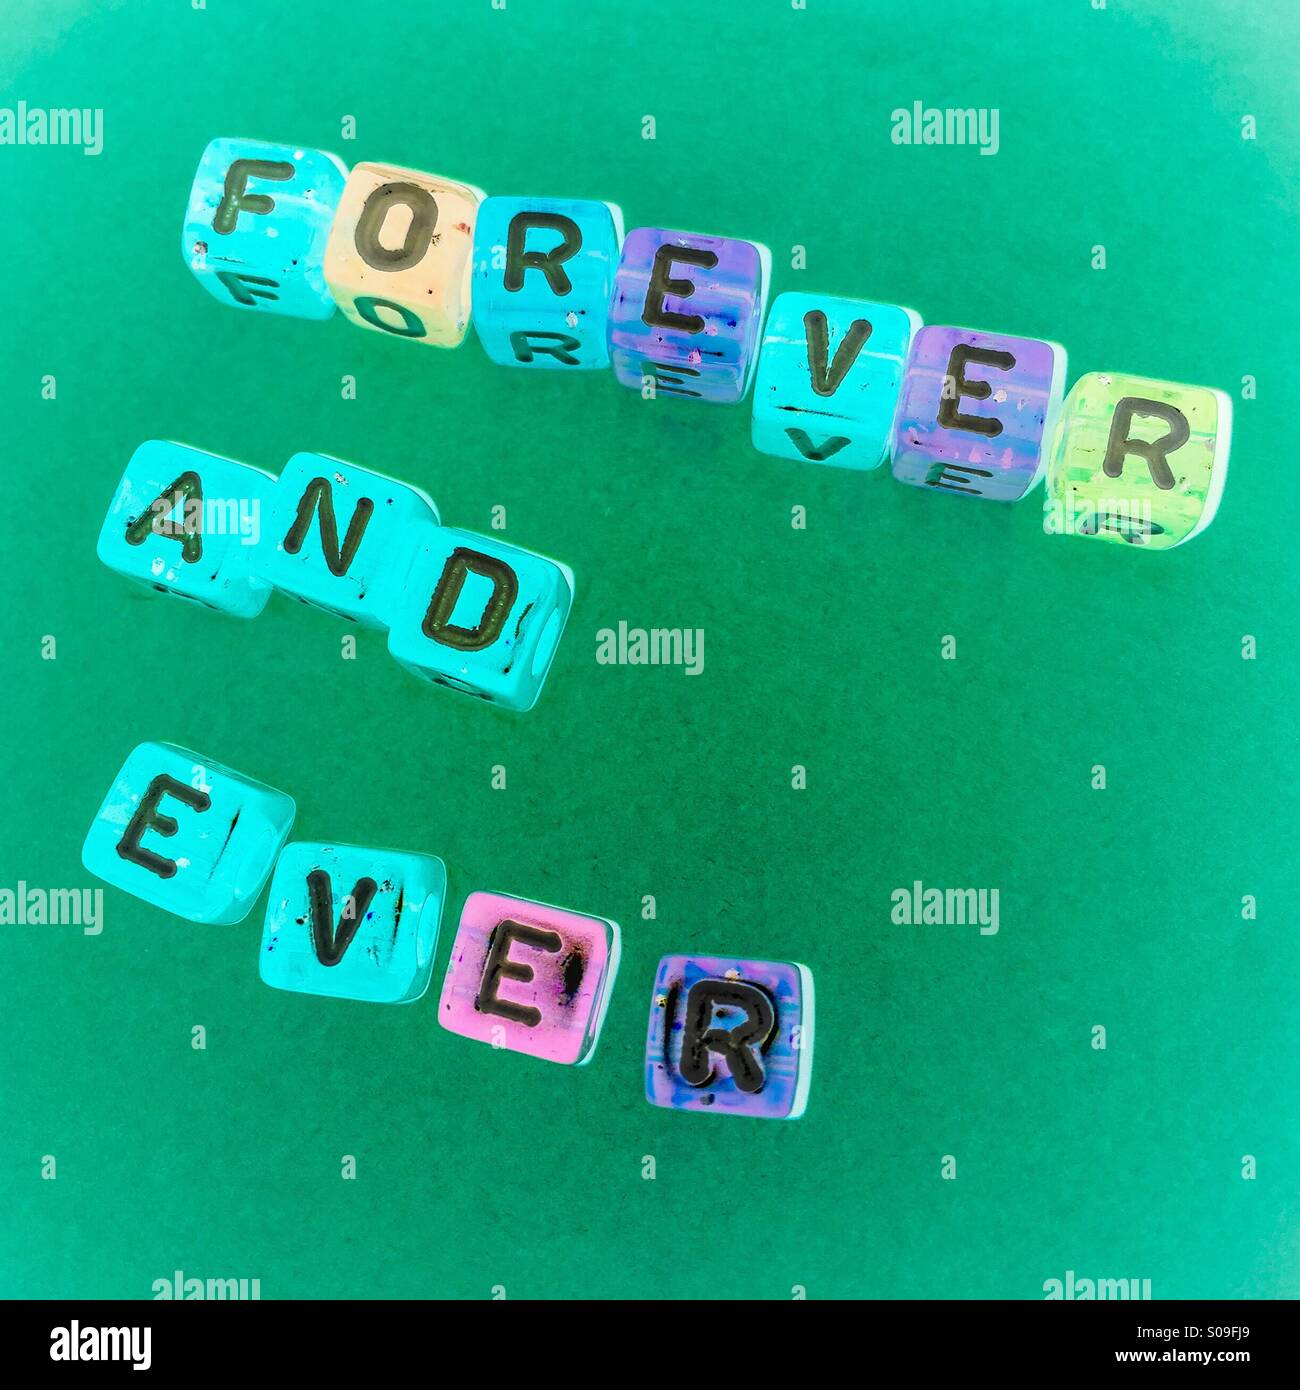 Forever and ever letters - Stock Image